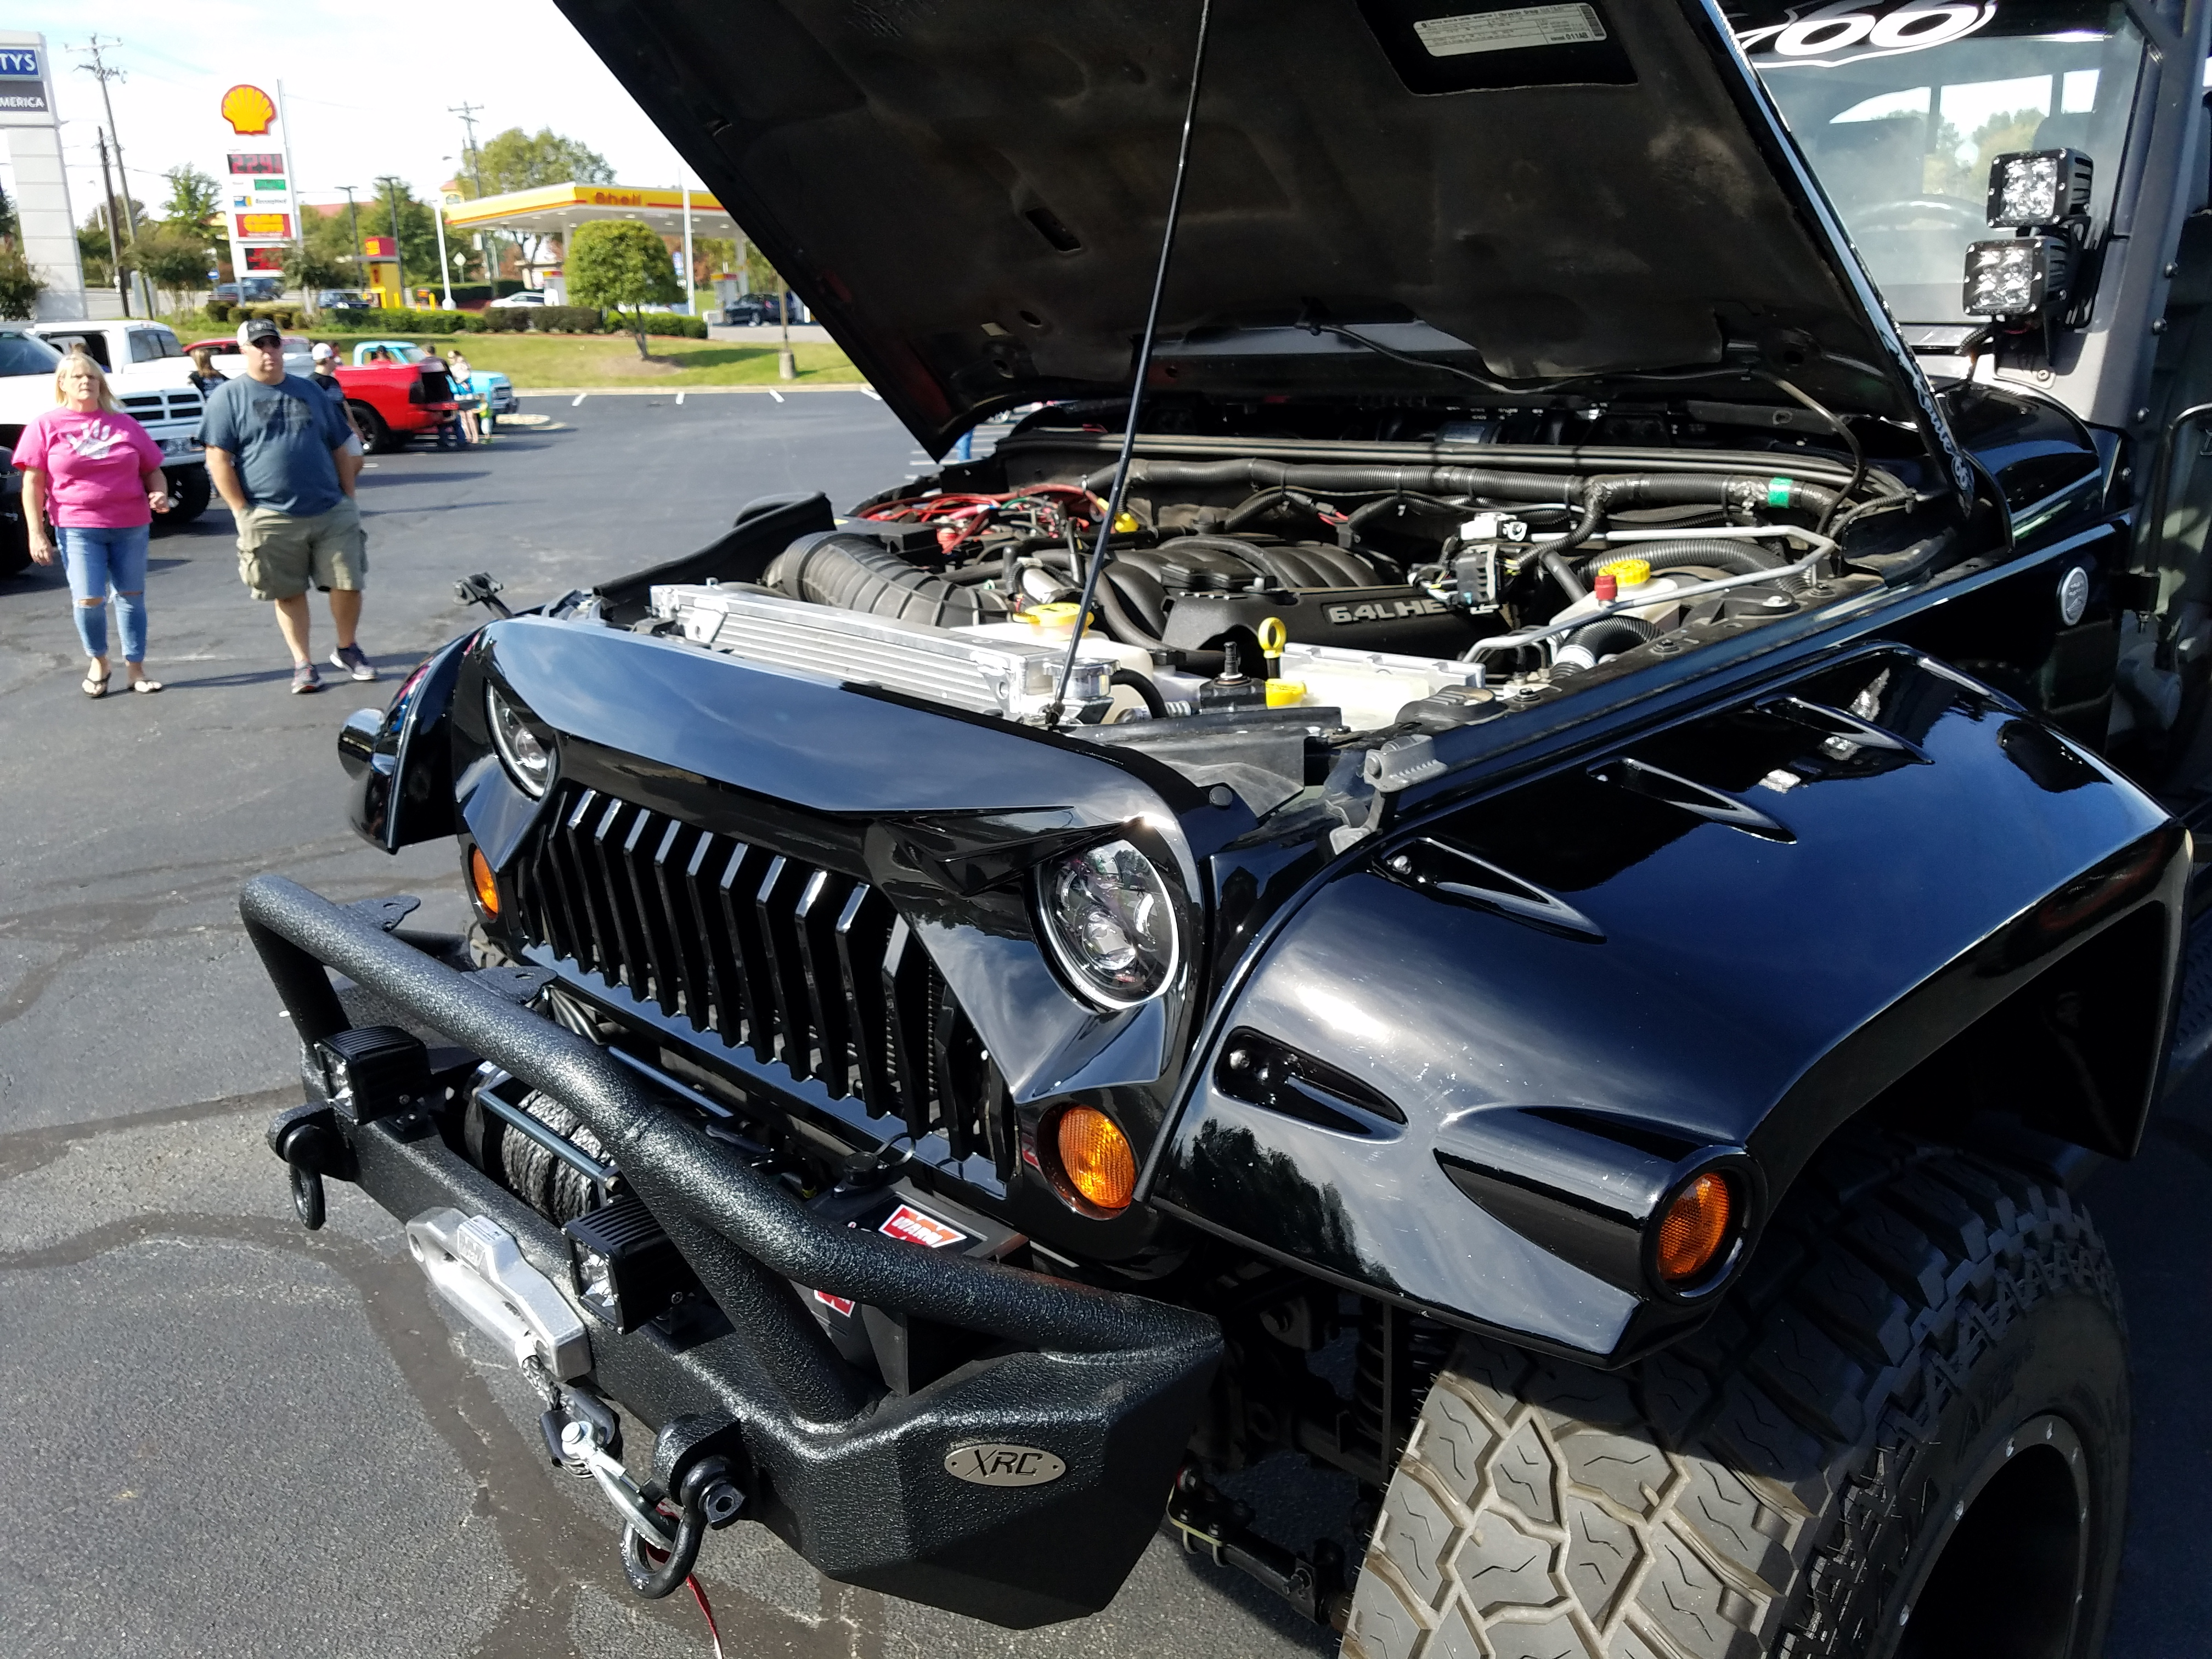 Route 66 Lifted 6.4L HEMI Jeep JK